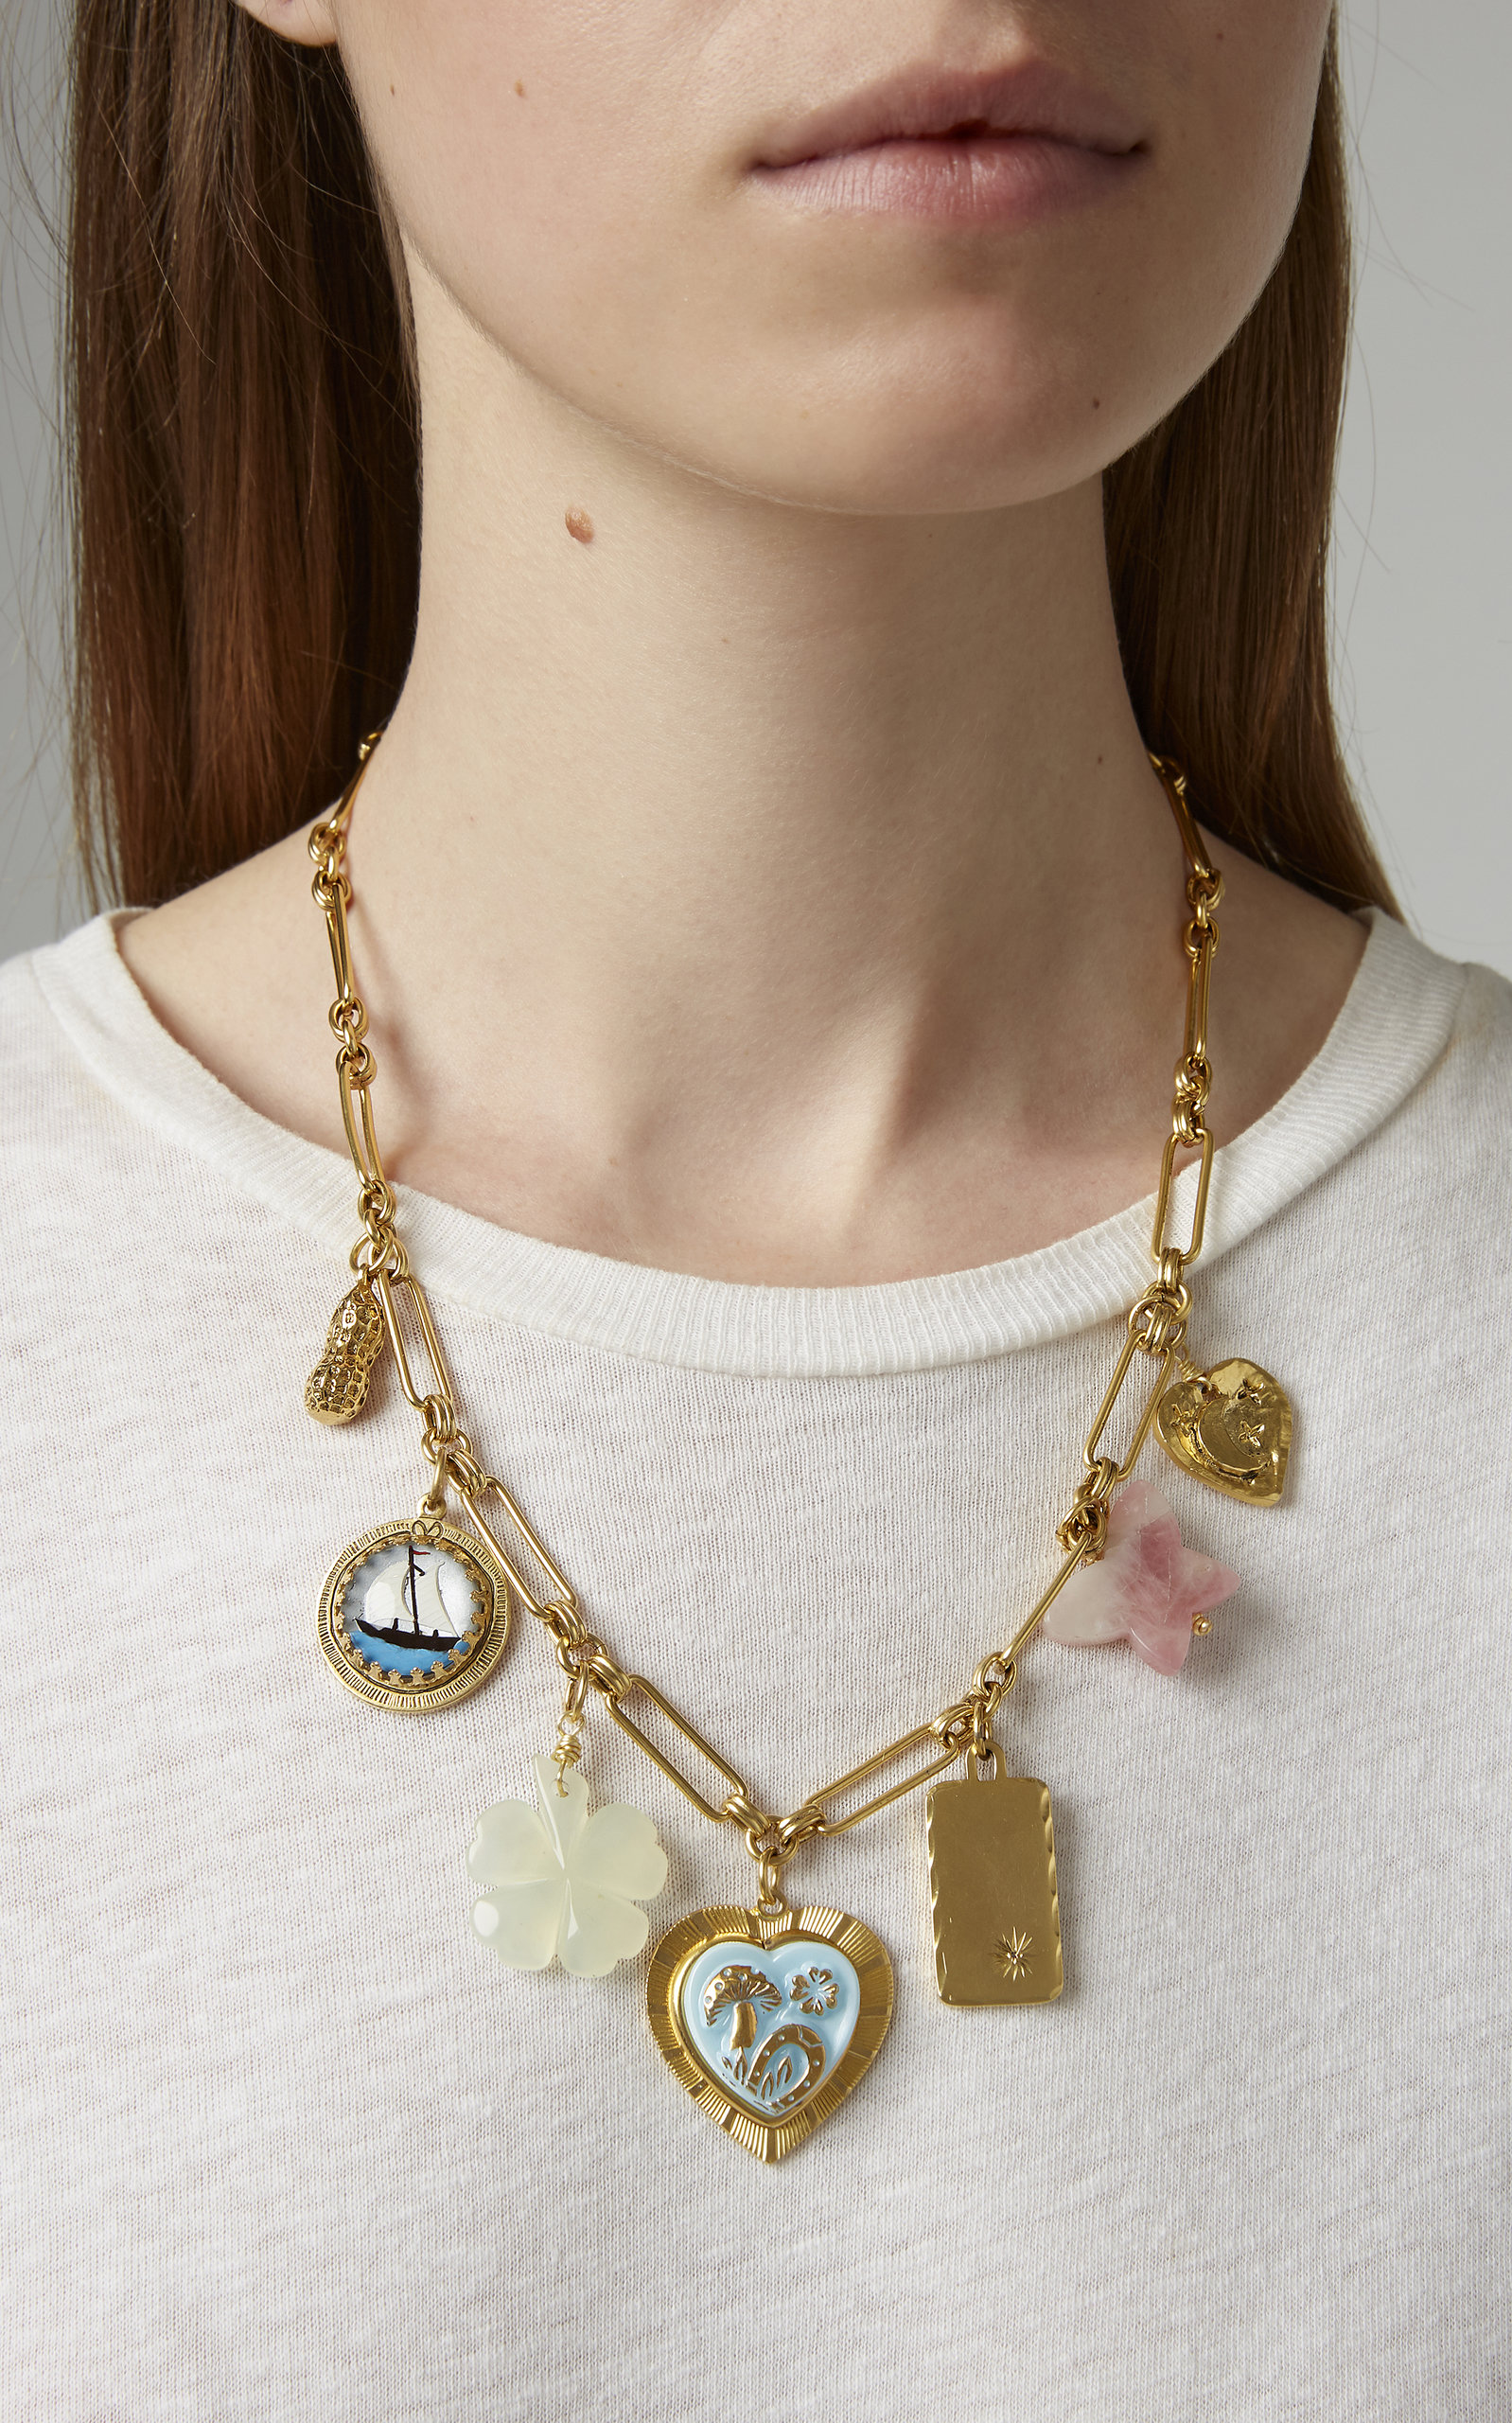 e63c3330fe02d Mischief Managed 24K Gold-Plated Charm Necklace